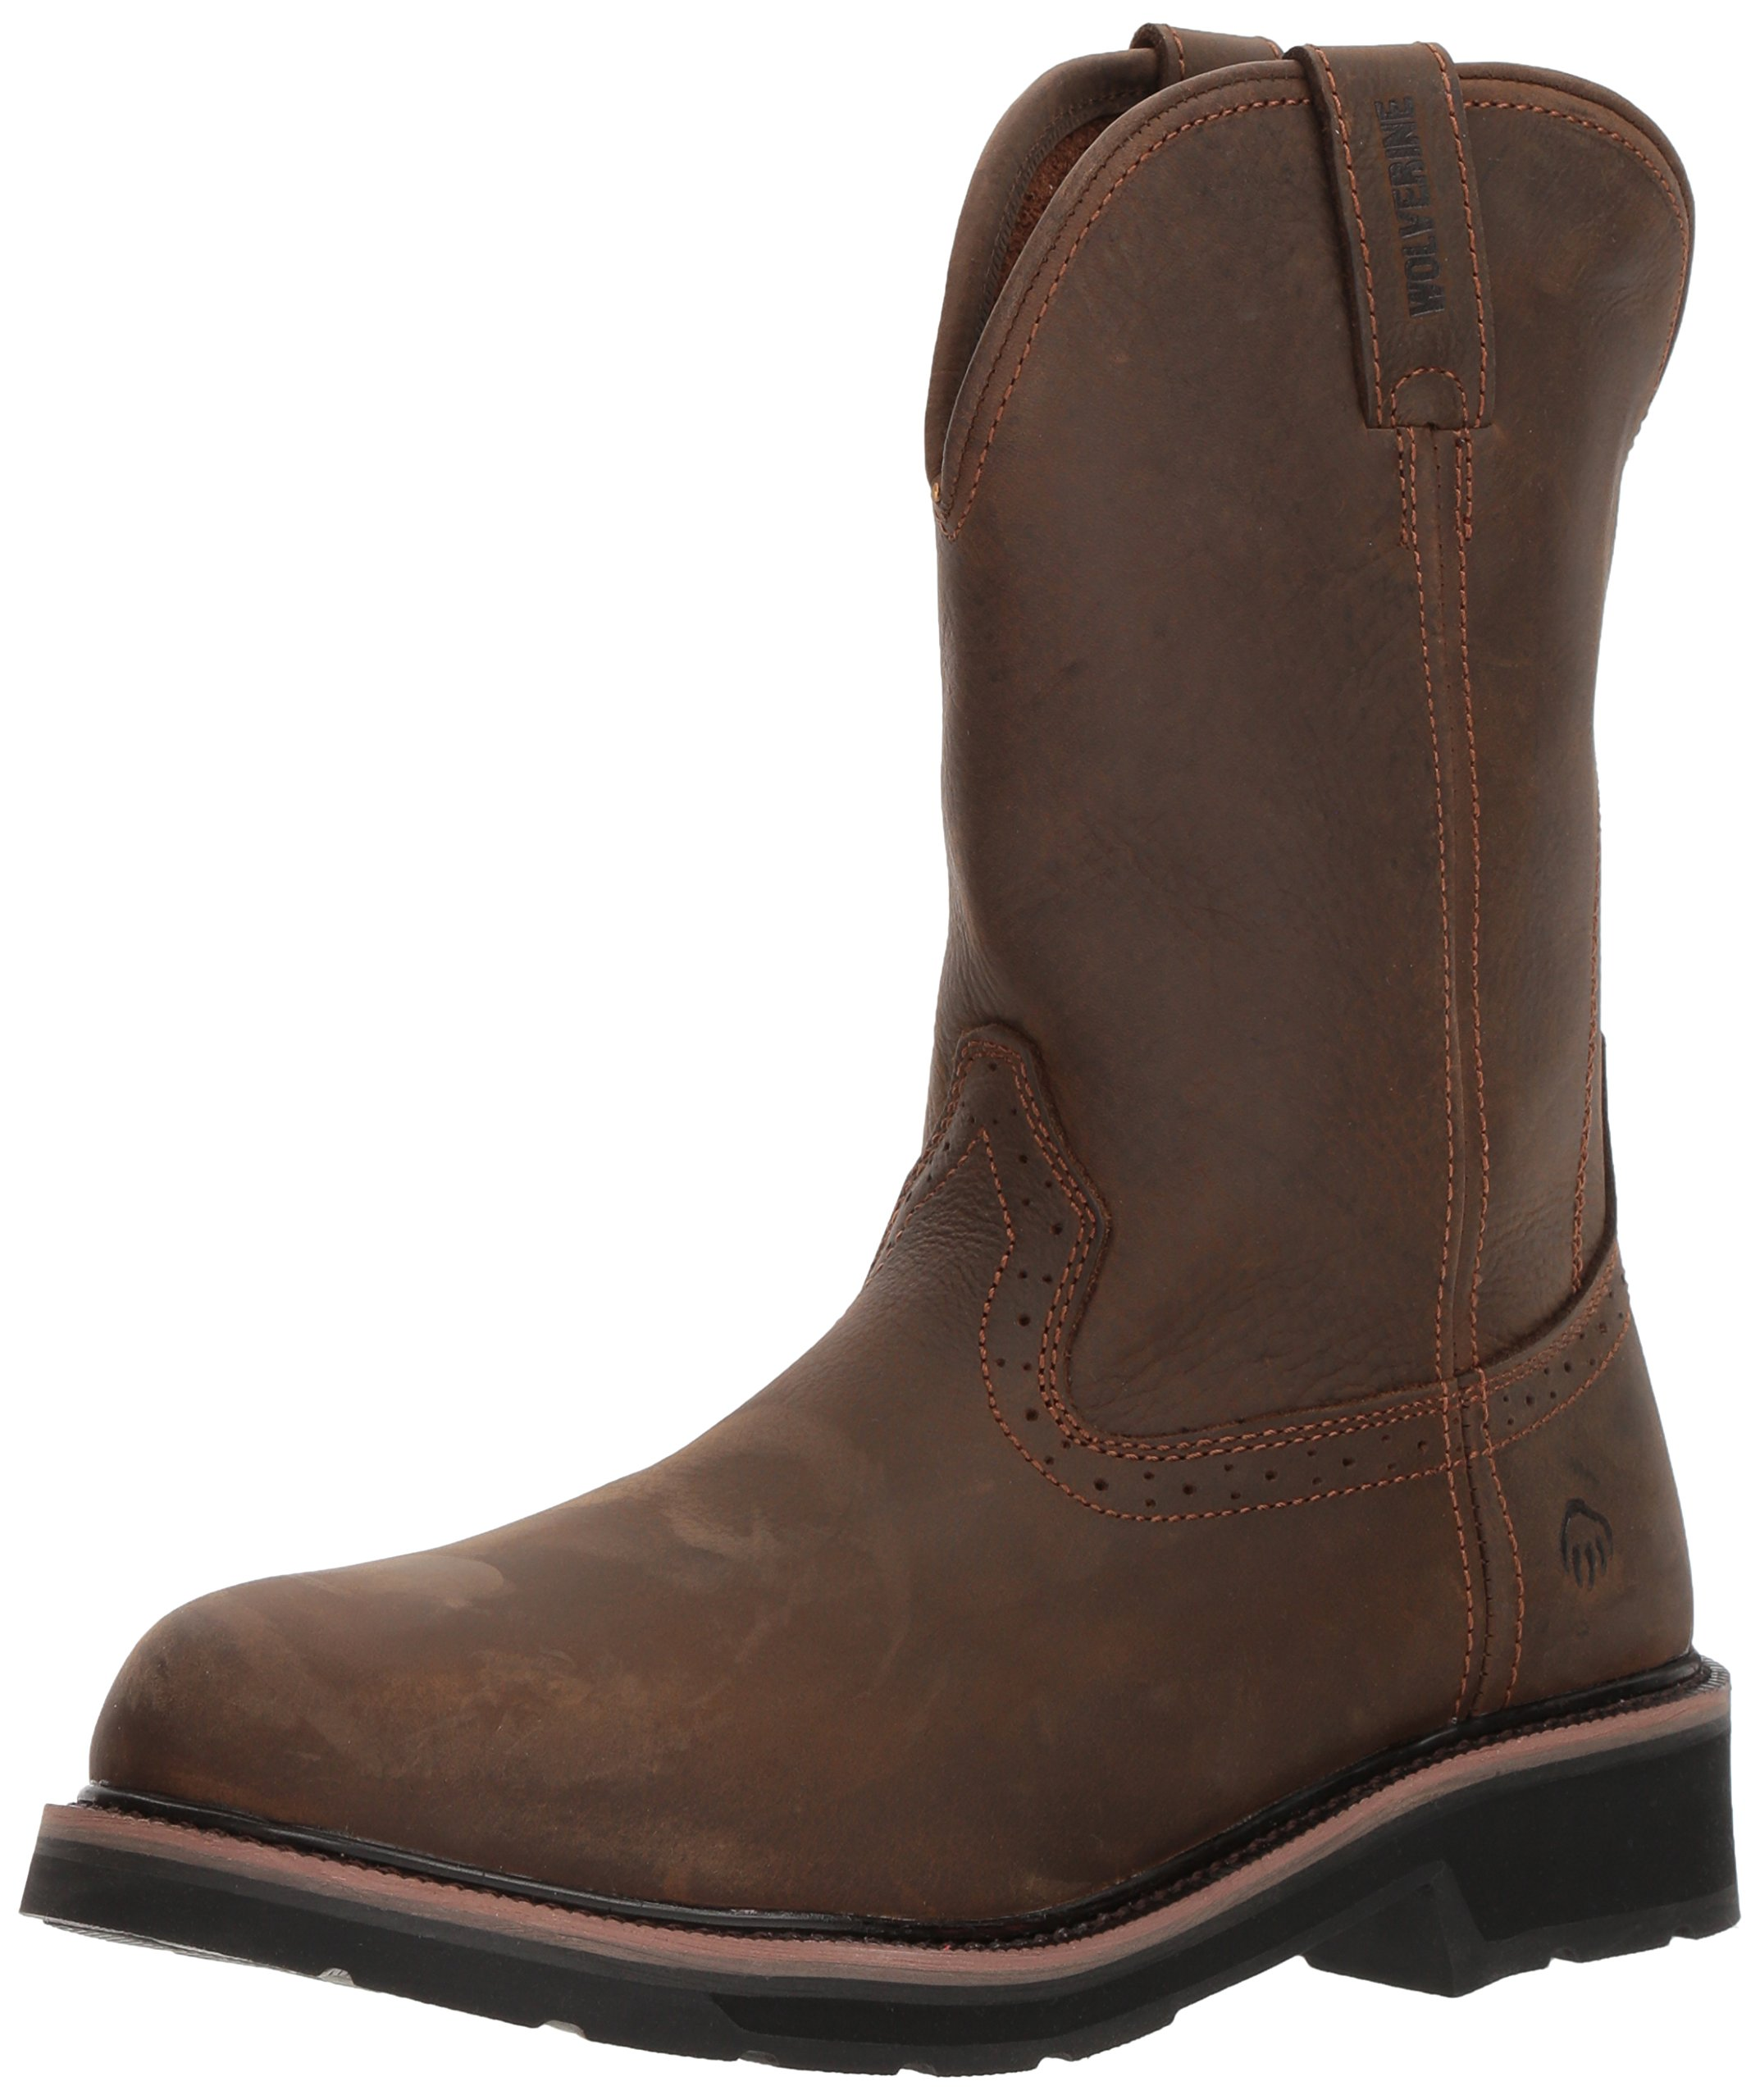 Wolverine Men's Ranchero Soft-Toe Wellington Construction Boot, Summer Brown, 11 Extra Wide US